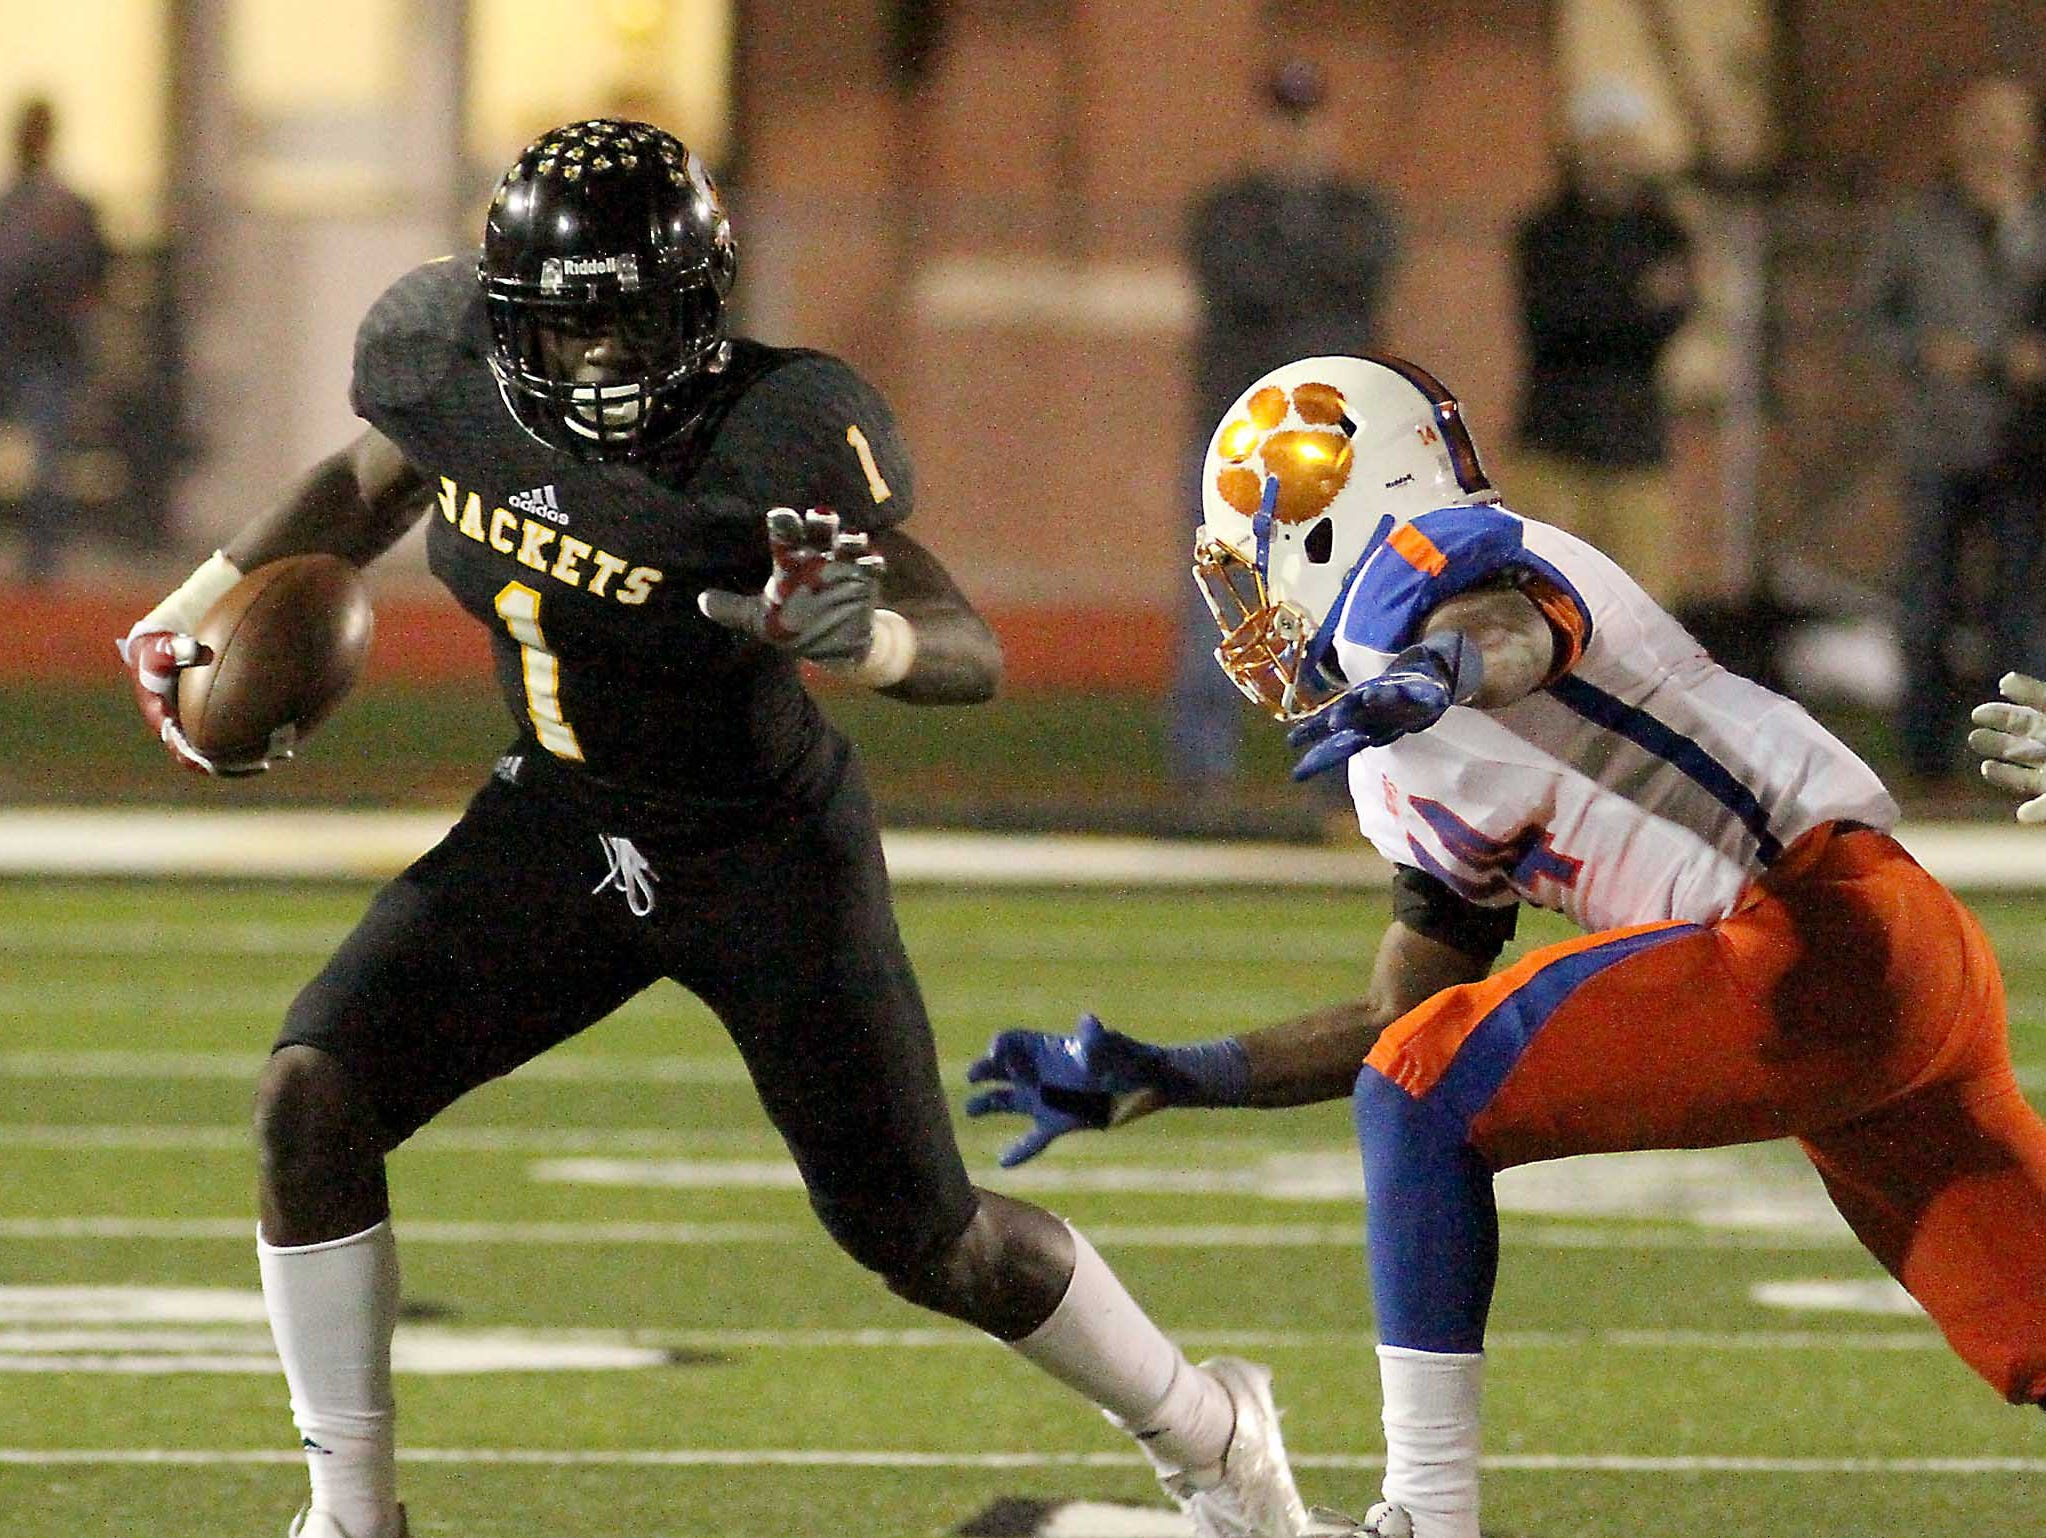 Starkville High's A. J. Brown (1) sprints away from Madison Central's AJ Brown (14) during the first half of the 6A North Half championship game in Starkville on Friday, Nov. 27, 2015. (Special to the Clarion Ledger/ Jim Lytle)